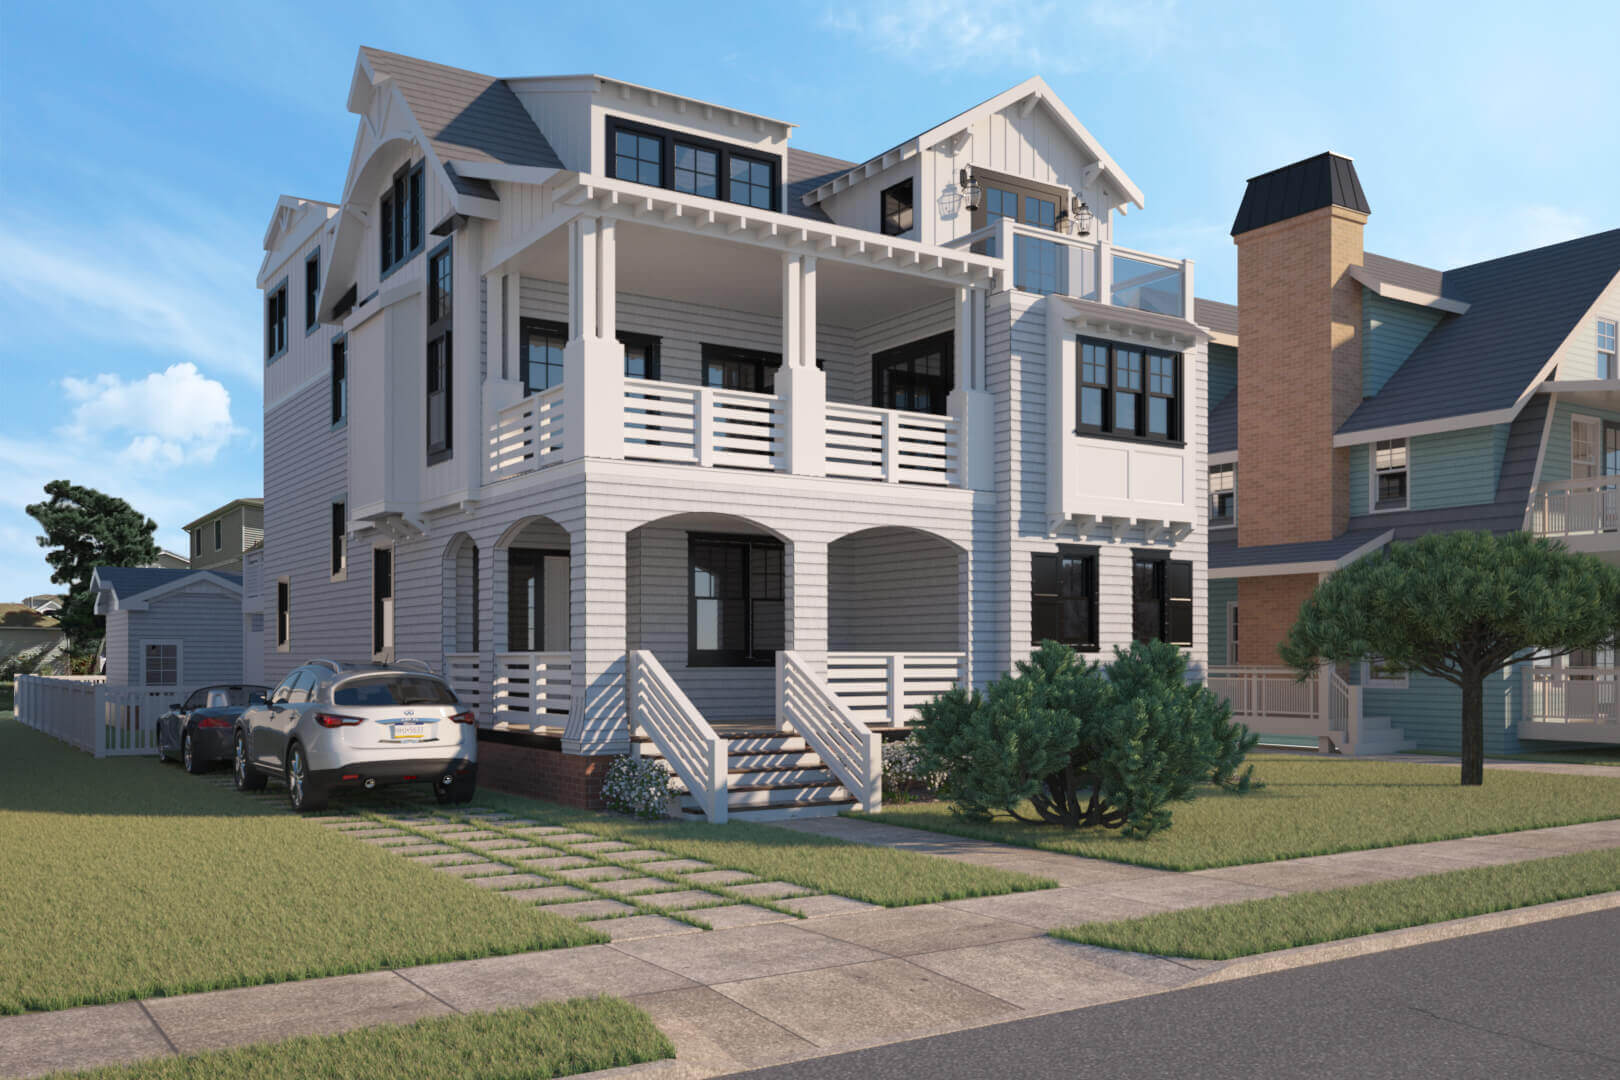 Exterior 3D architectural rendering and visualization